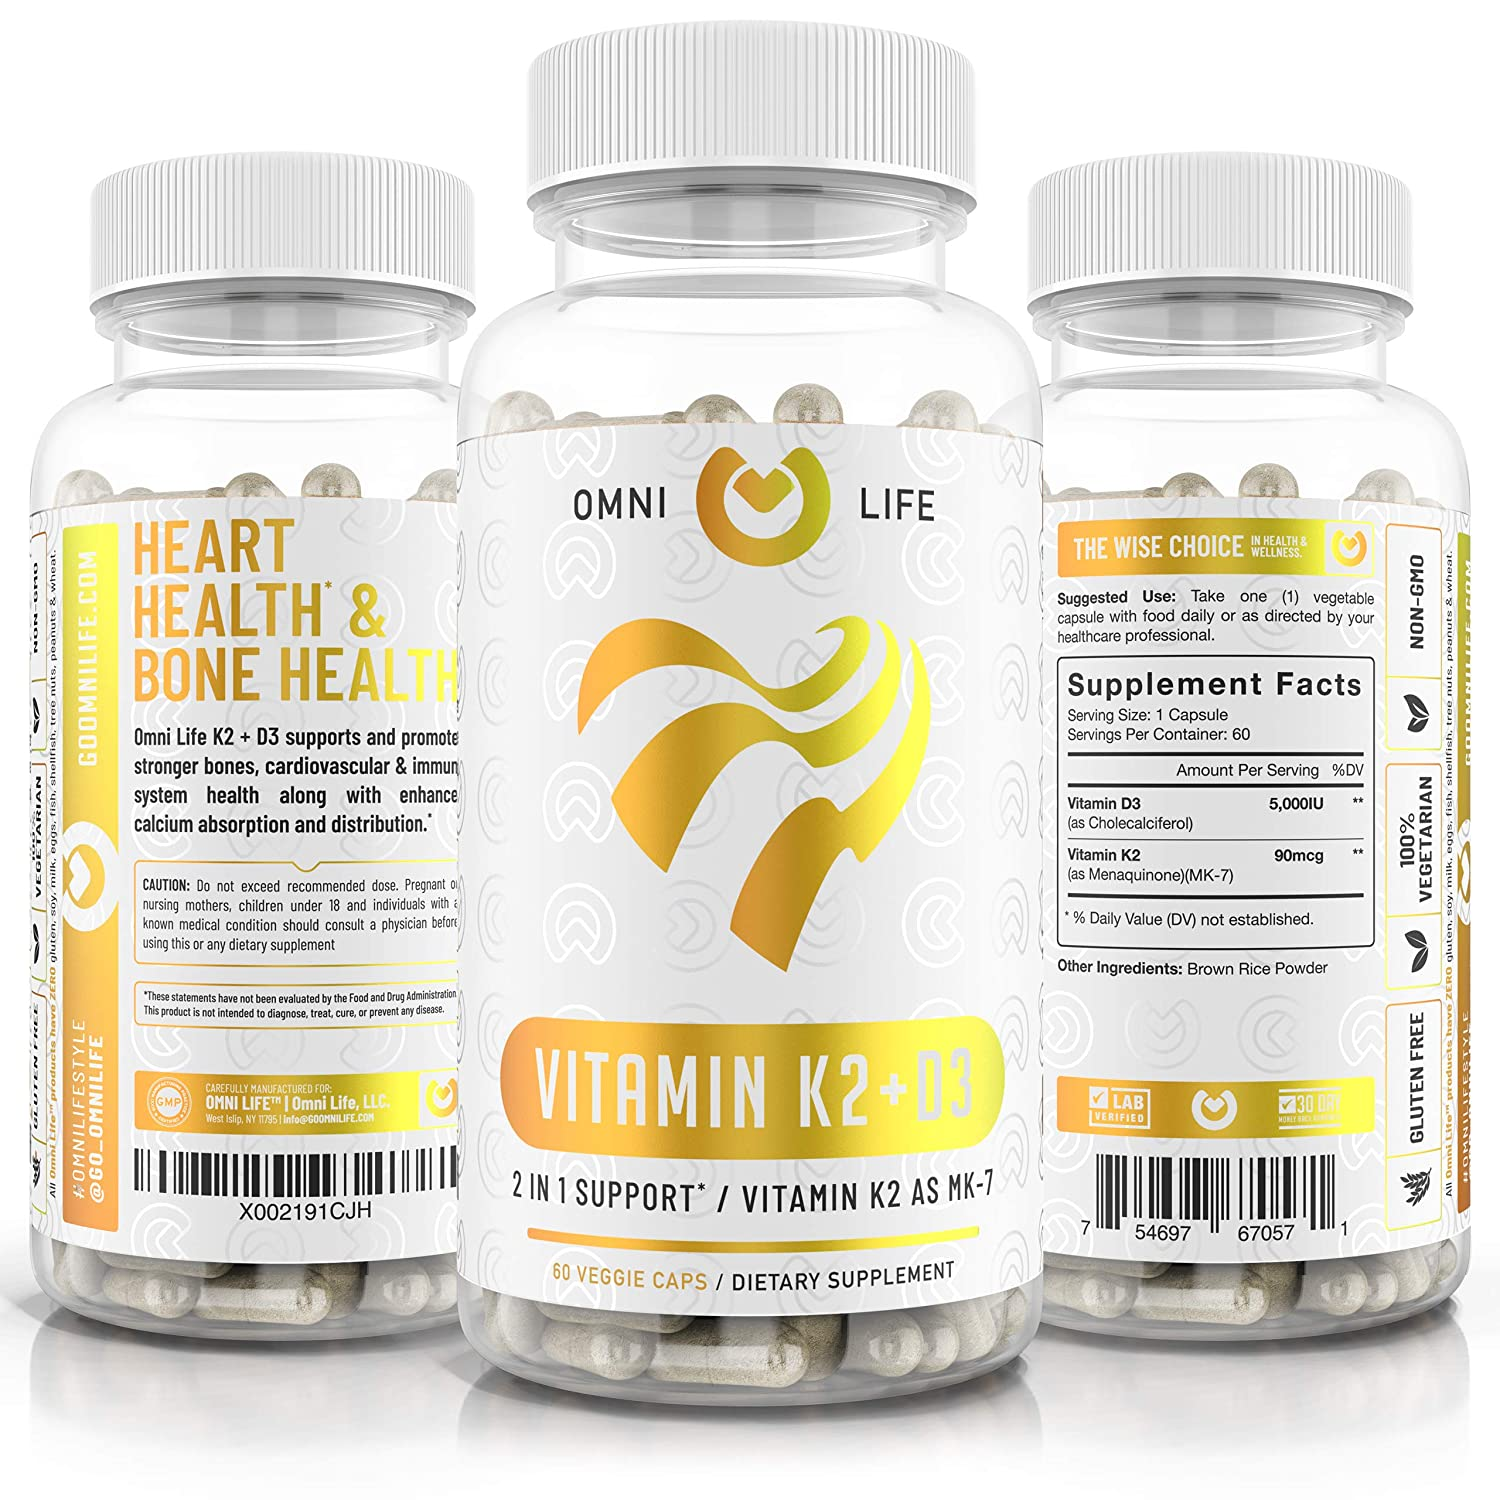 Vitamin D3 With K2 (MK7) Supplement - Premium Natural Heart & Bone Health Capsules - NON-GMO, Gluten Free & Vegetarian D3 Plus K2 Complex with 5000 IU of Vitamin D 3 & 90 mcg of Vitamin K 2 - 60 Count